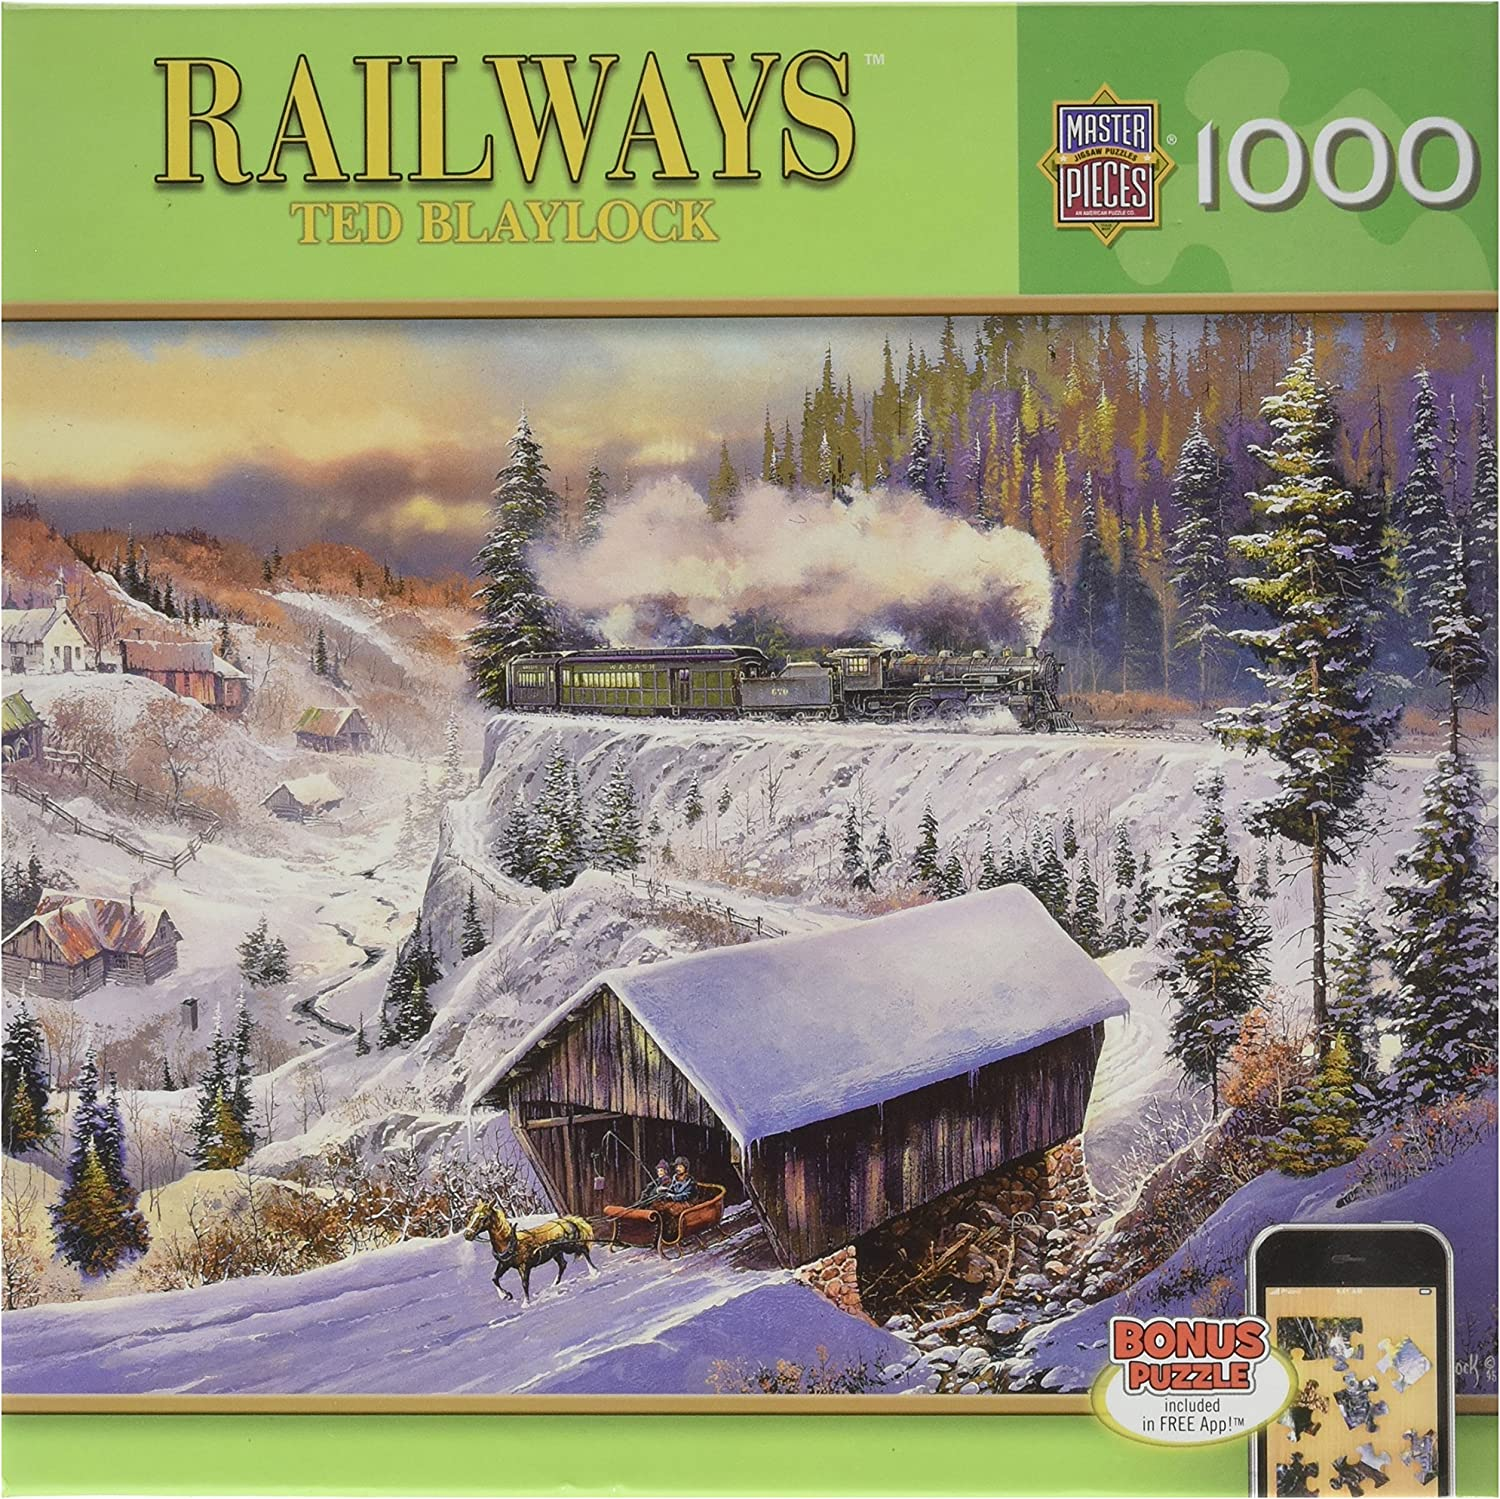 MasterPieces Railways Wabash Cannonball Run Jigsaw Puzzle, Art by Ted Blaylock, 1000-Piece